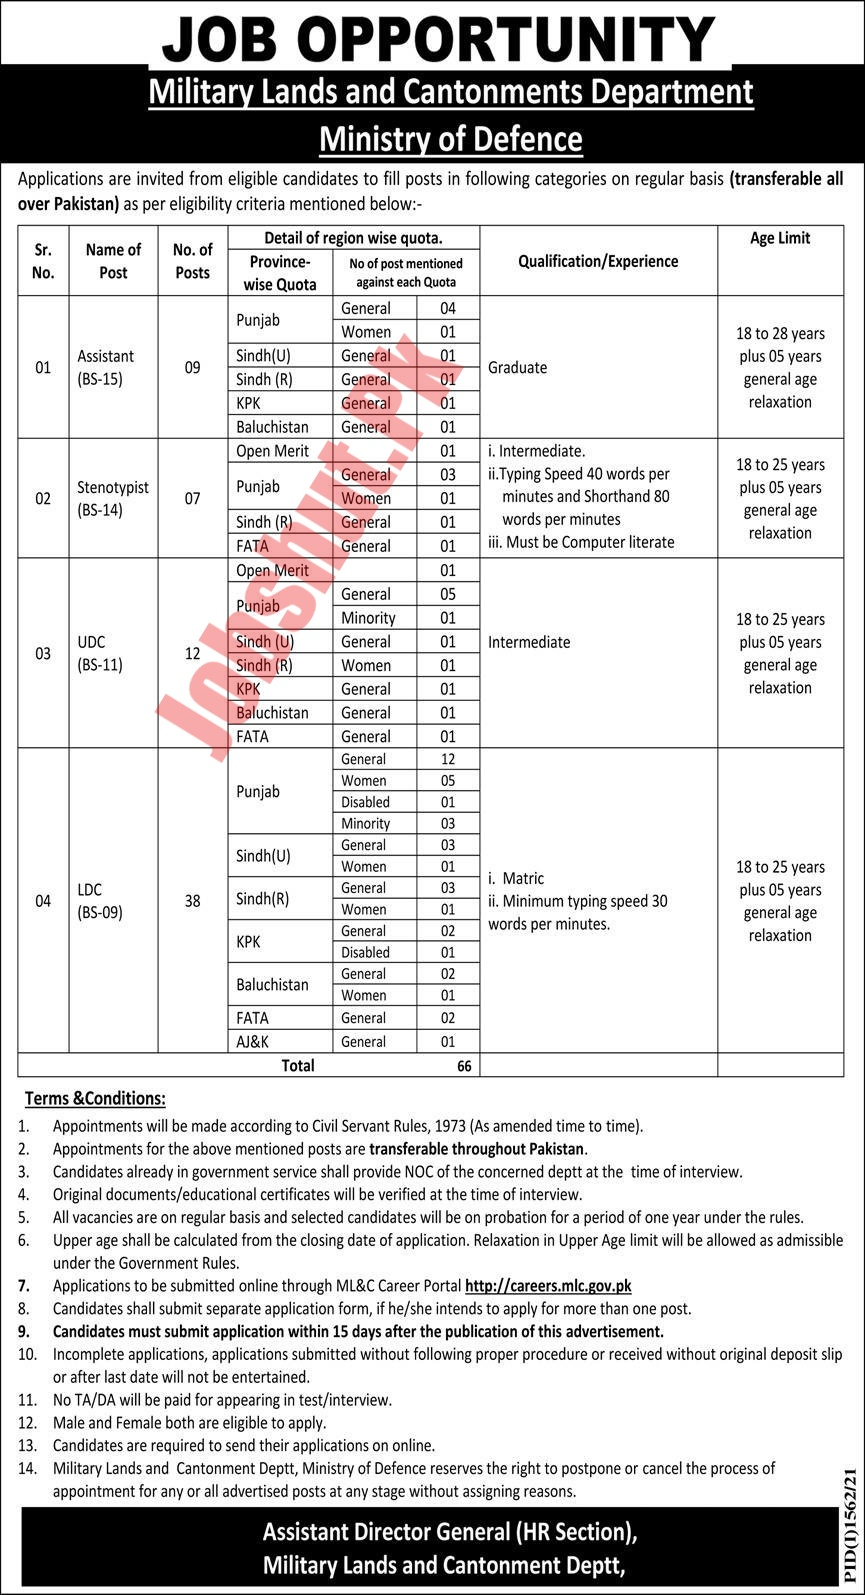 Military Lands and Cantonments jobs advertisement